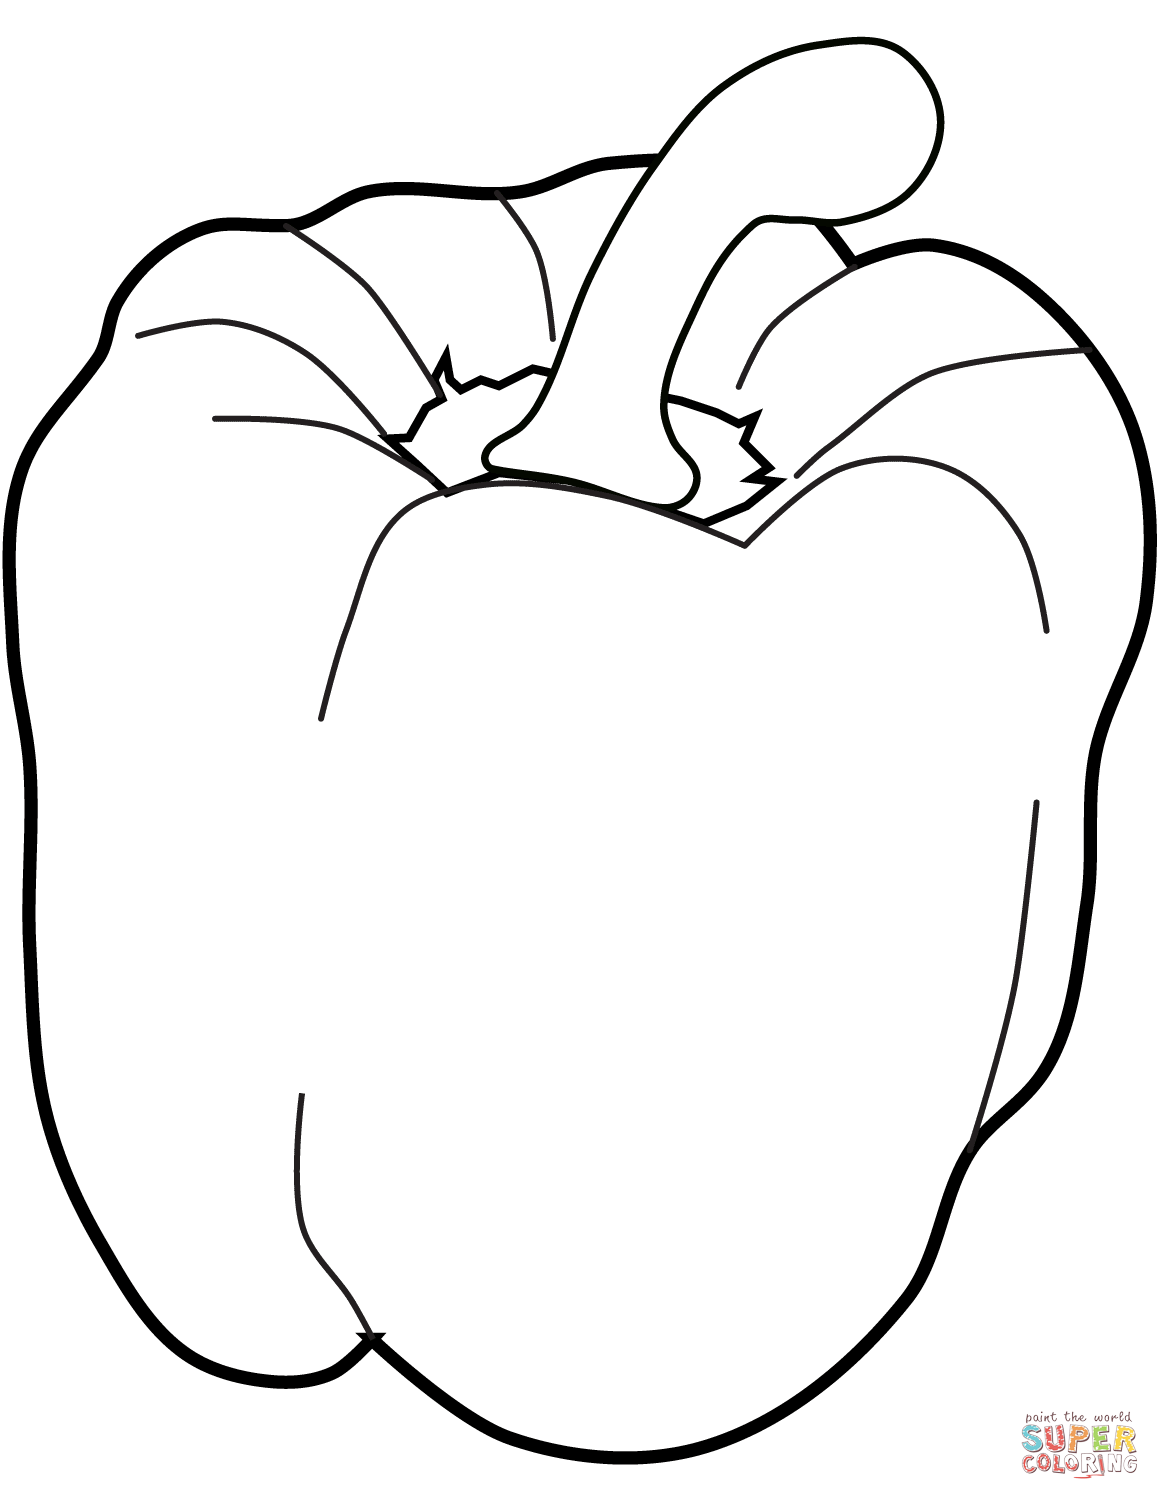 Sweet Pepper coloring page | Free Printable Coloring Pages